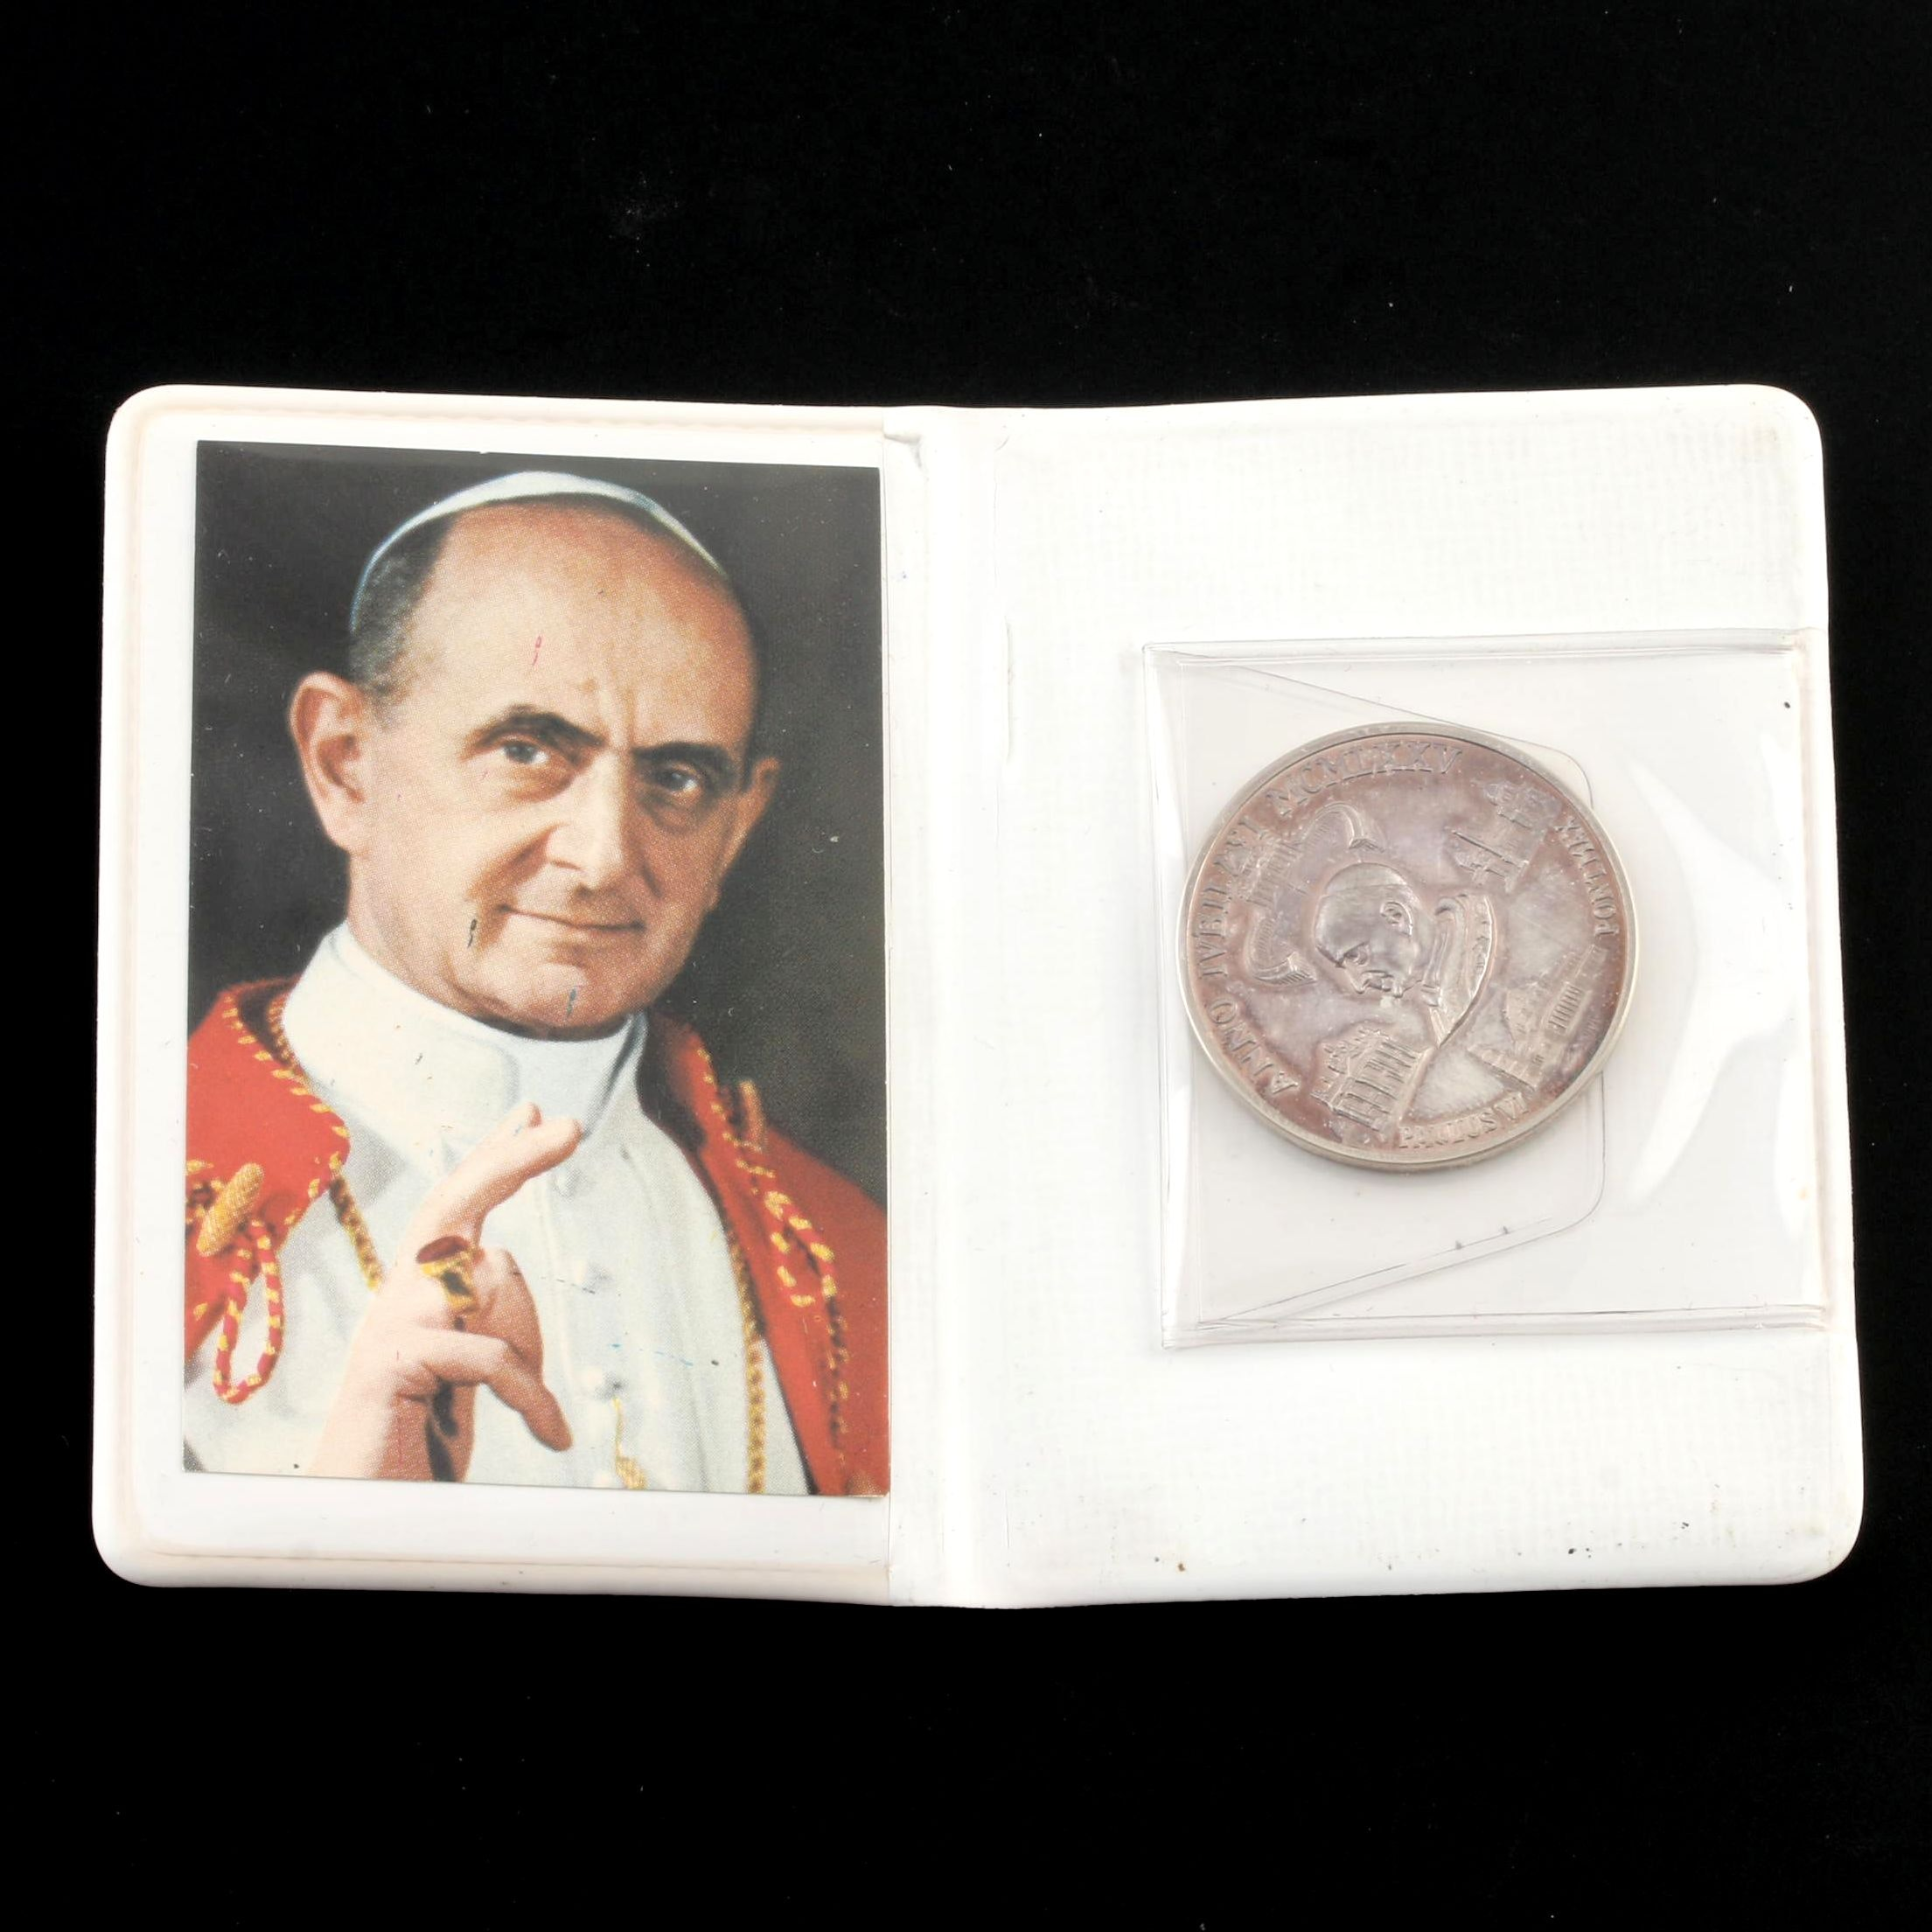 1975 Vatican City Pope Paul VI Silver Medal